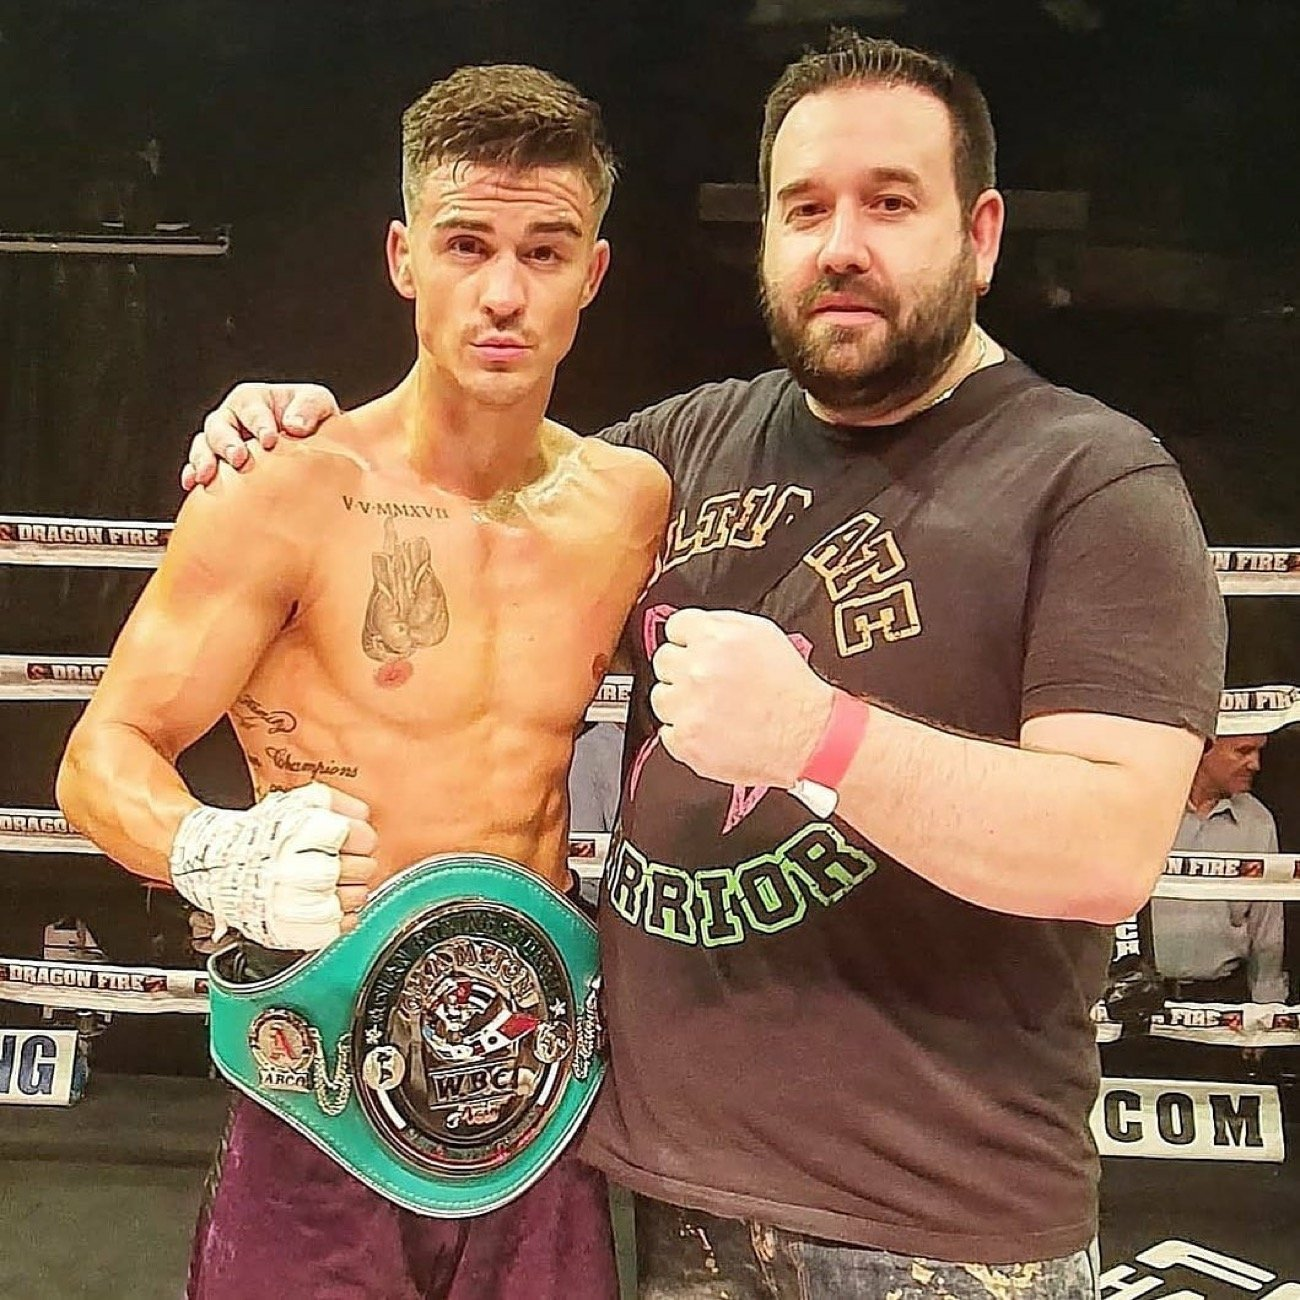 Jackson England - All action Australian Jackson England is still buzzing in the wake of picking up his first WBC strap, which came in the form of their Asia Boxing Council super featherweight title.